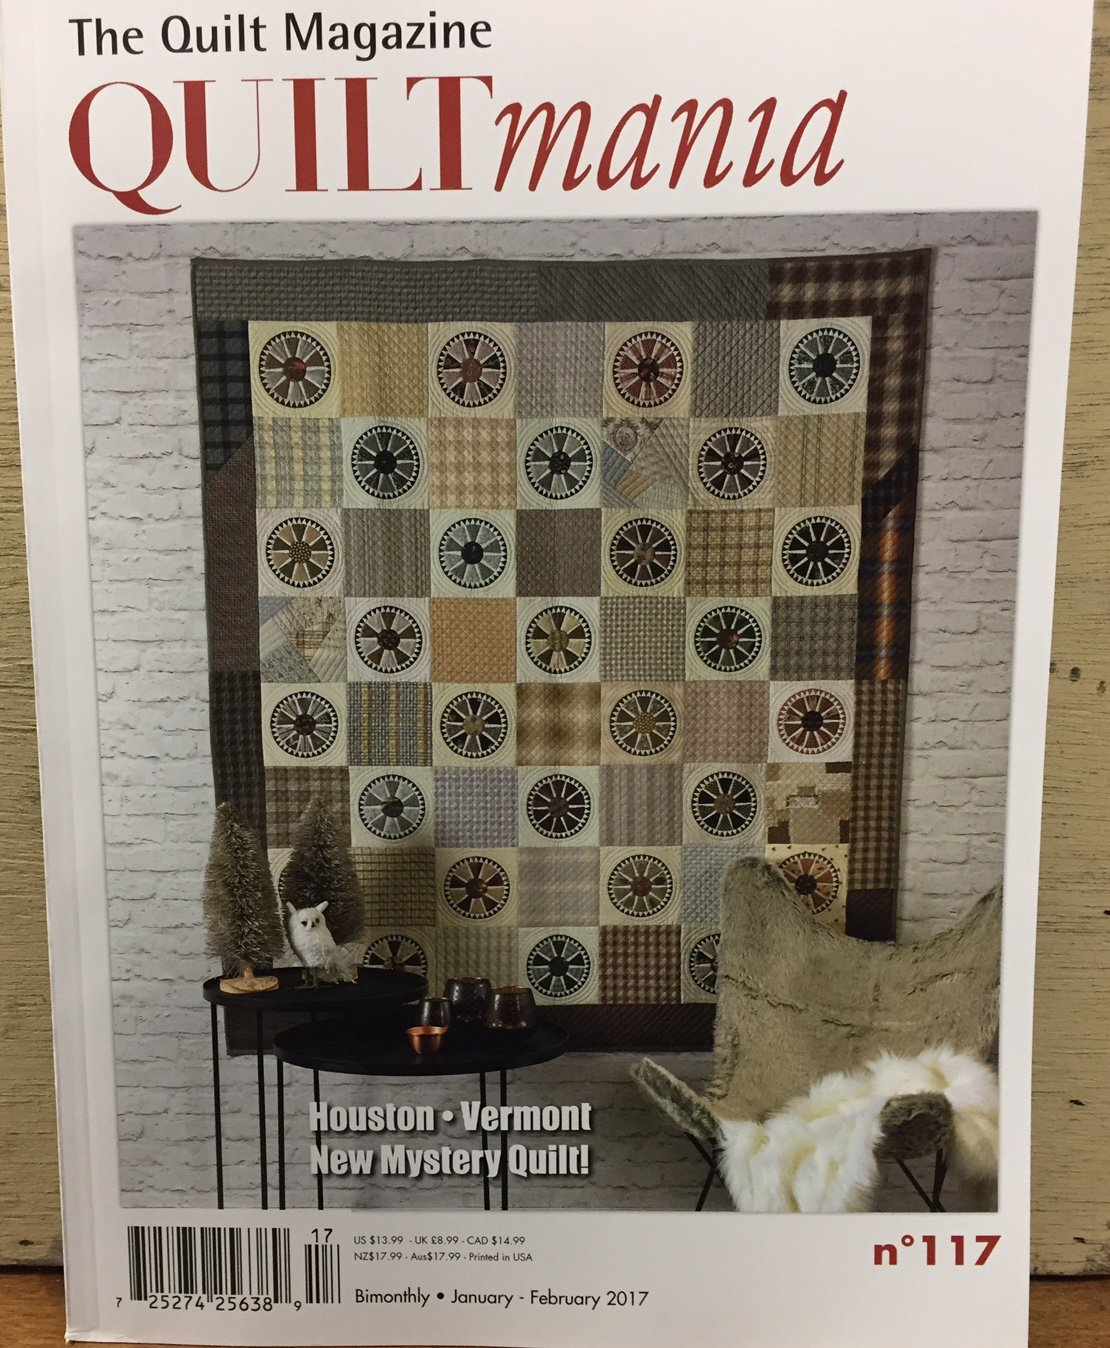 Quiltmania #117 Jan/Feb 2017